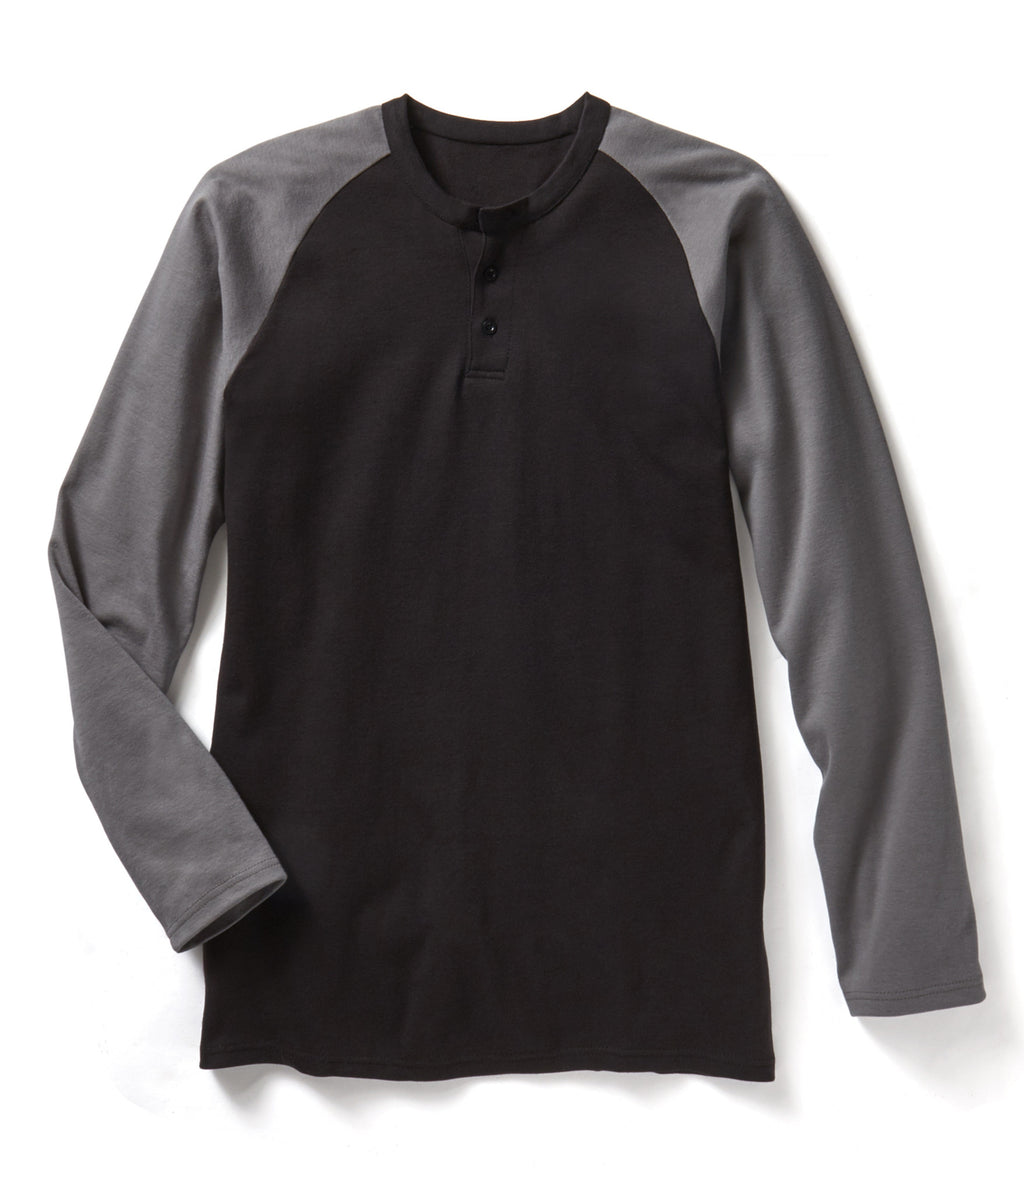 New Rasco FR Two Tone Henley T-shirts Grey and Black GBT464